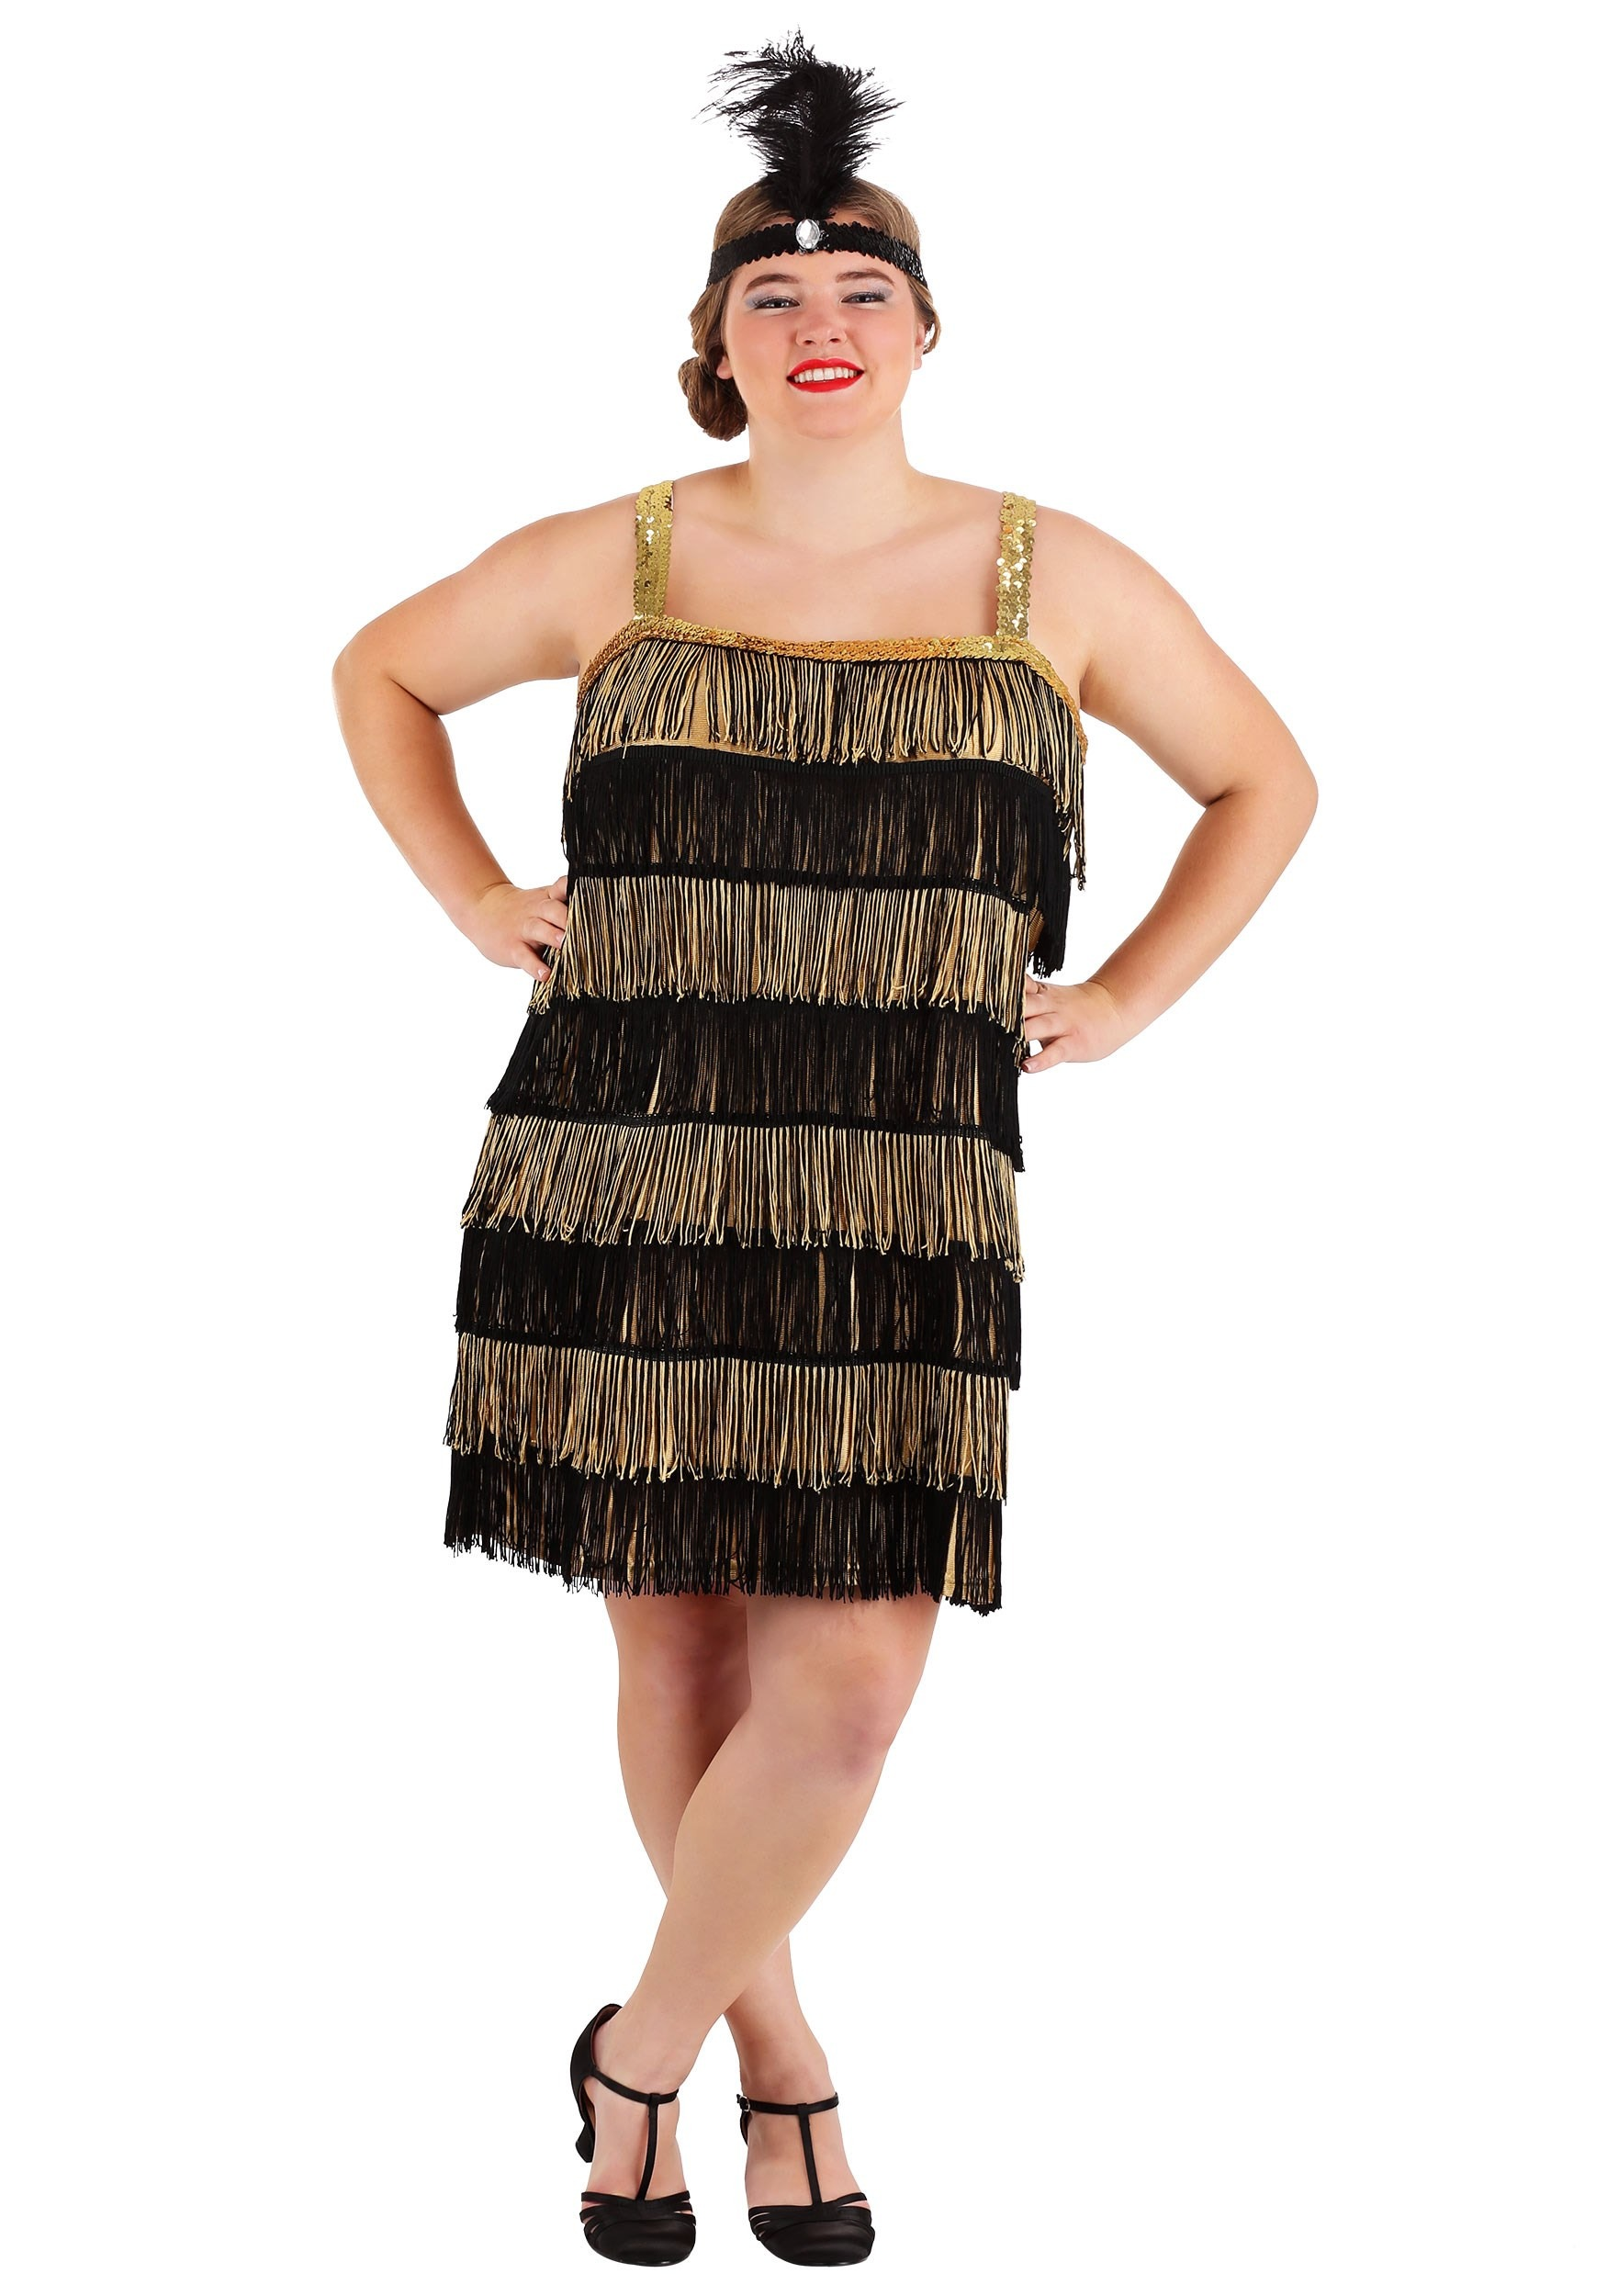 Gold and Black Fringe Flapper Plus Size Costume for Women